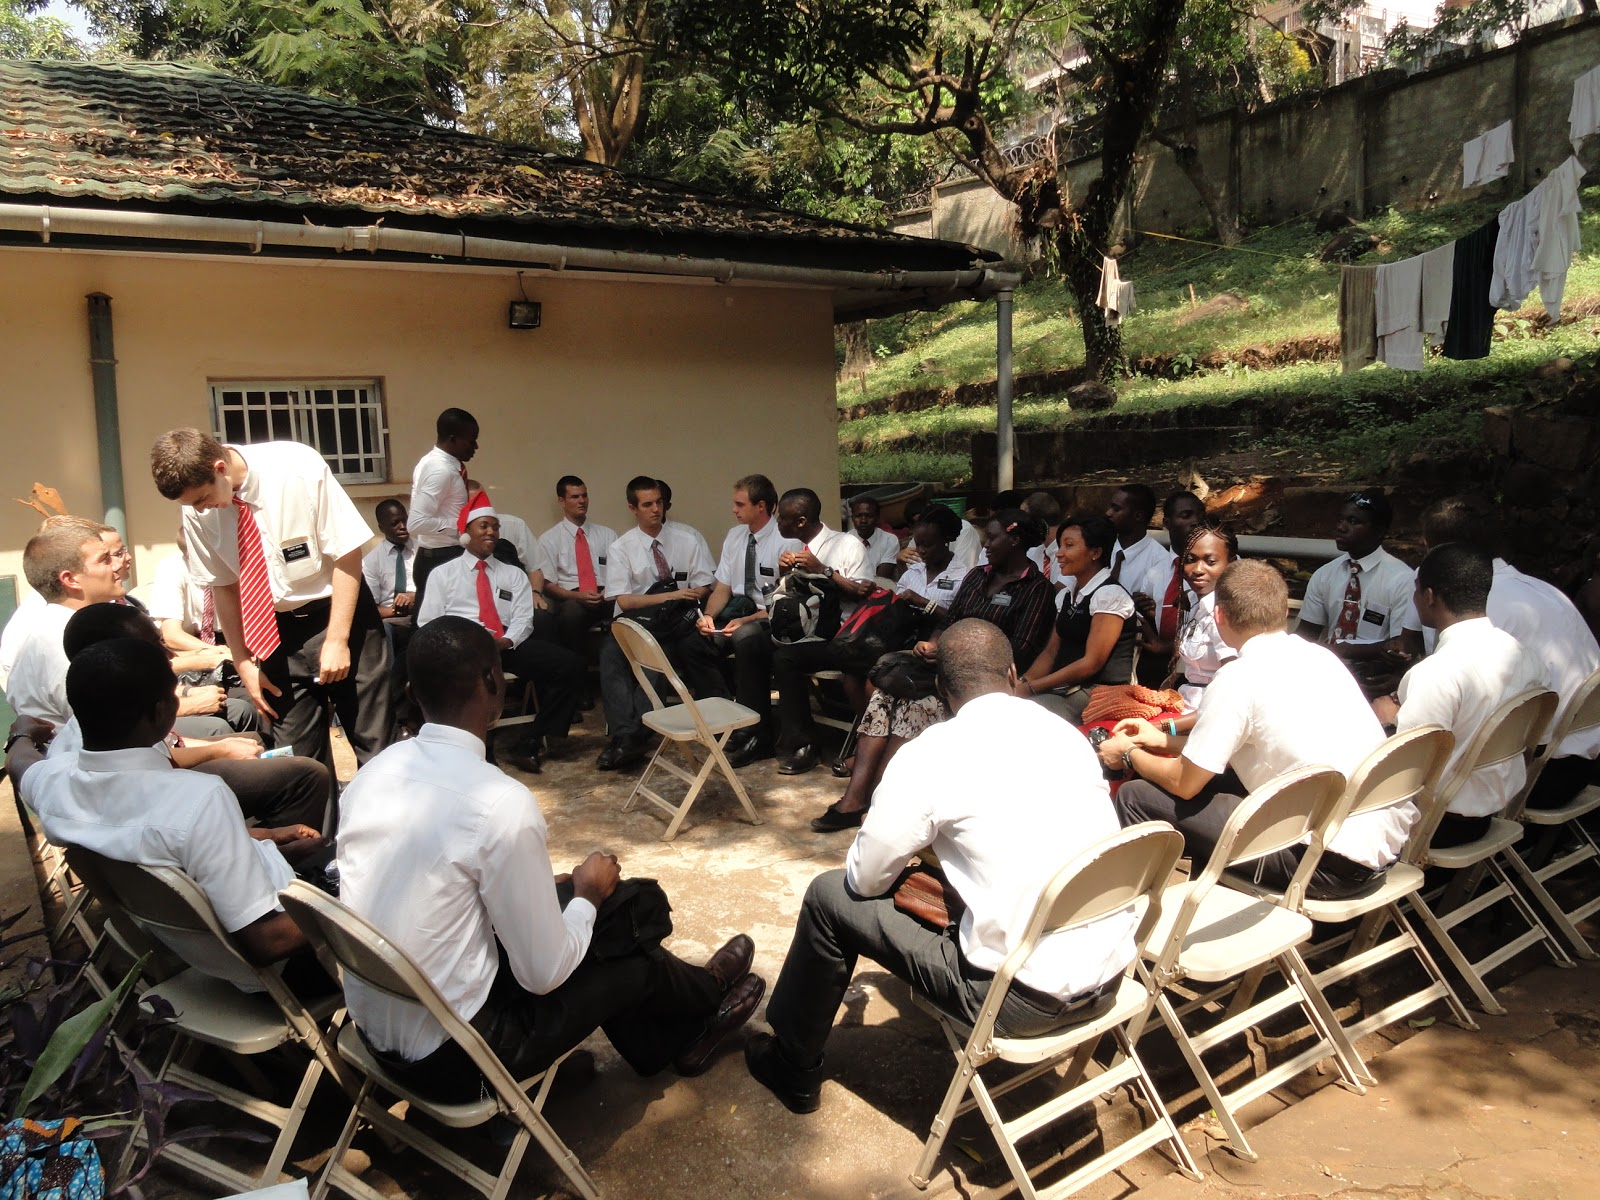 east freetown women Explore sierra leone holidays and discover  red roads of the northin freetown,  further east national parks and rainforest shelter endangered species.